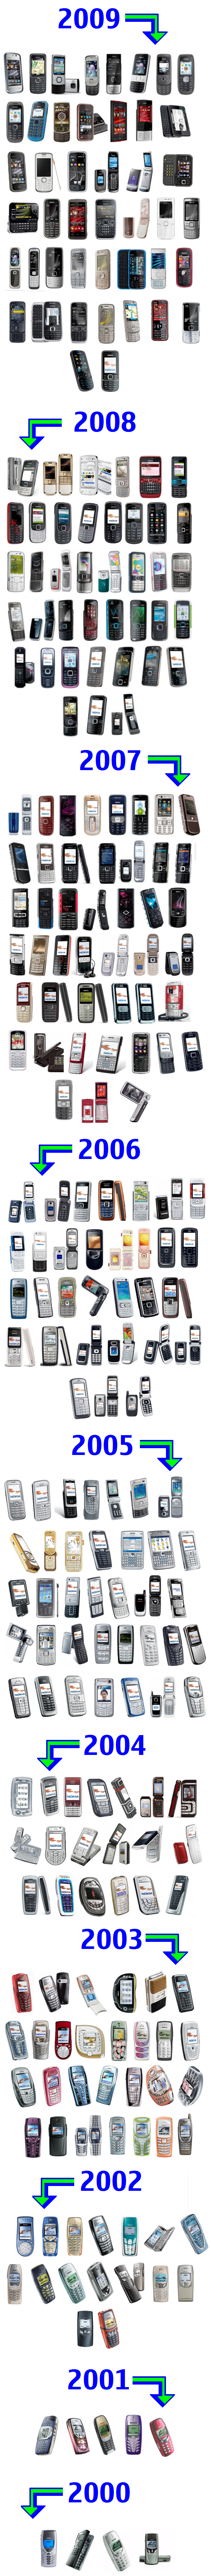 Nokia Phones of the Noughties